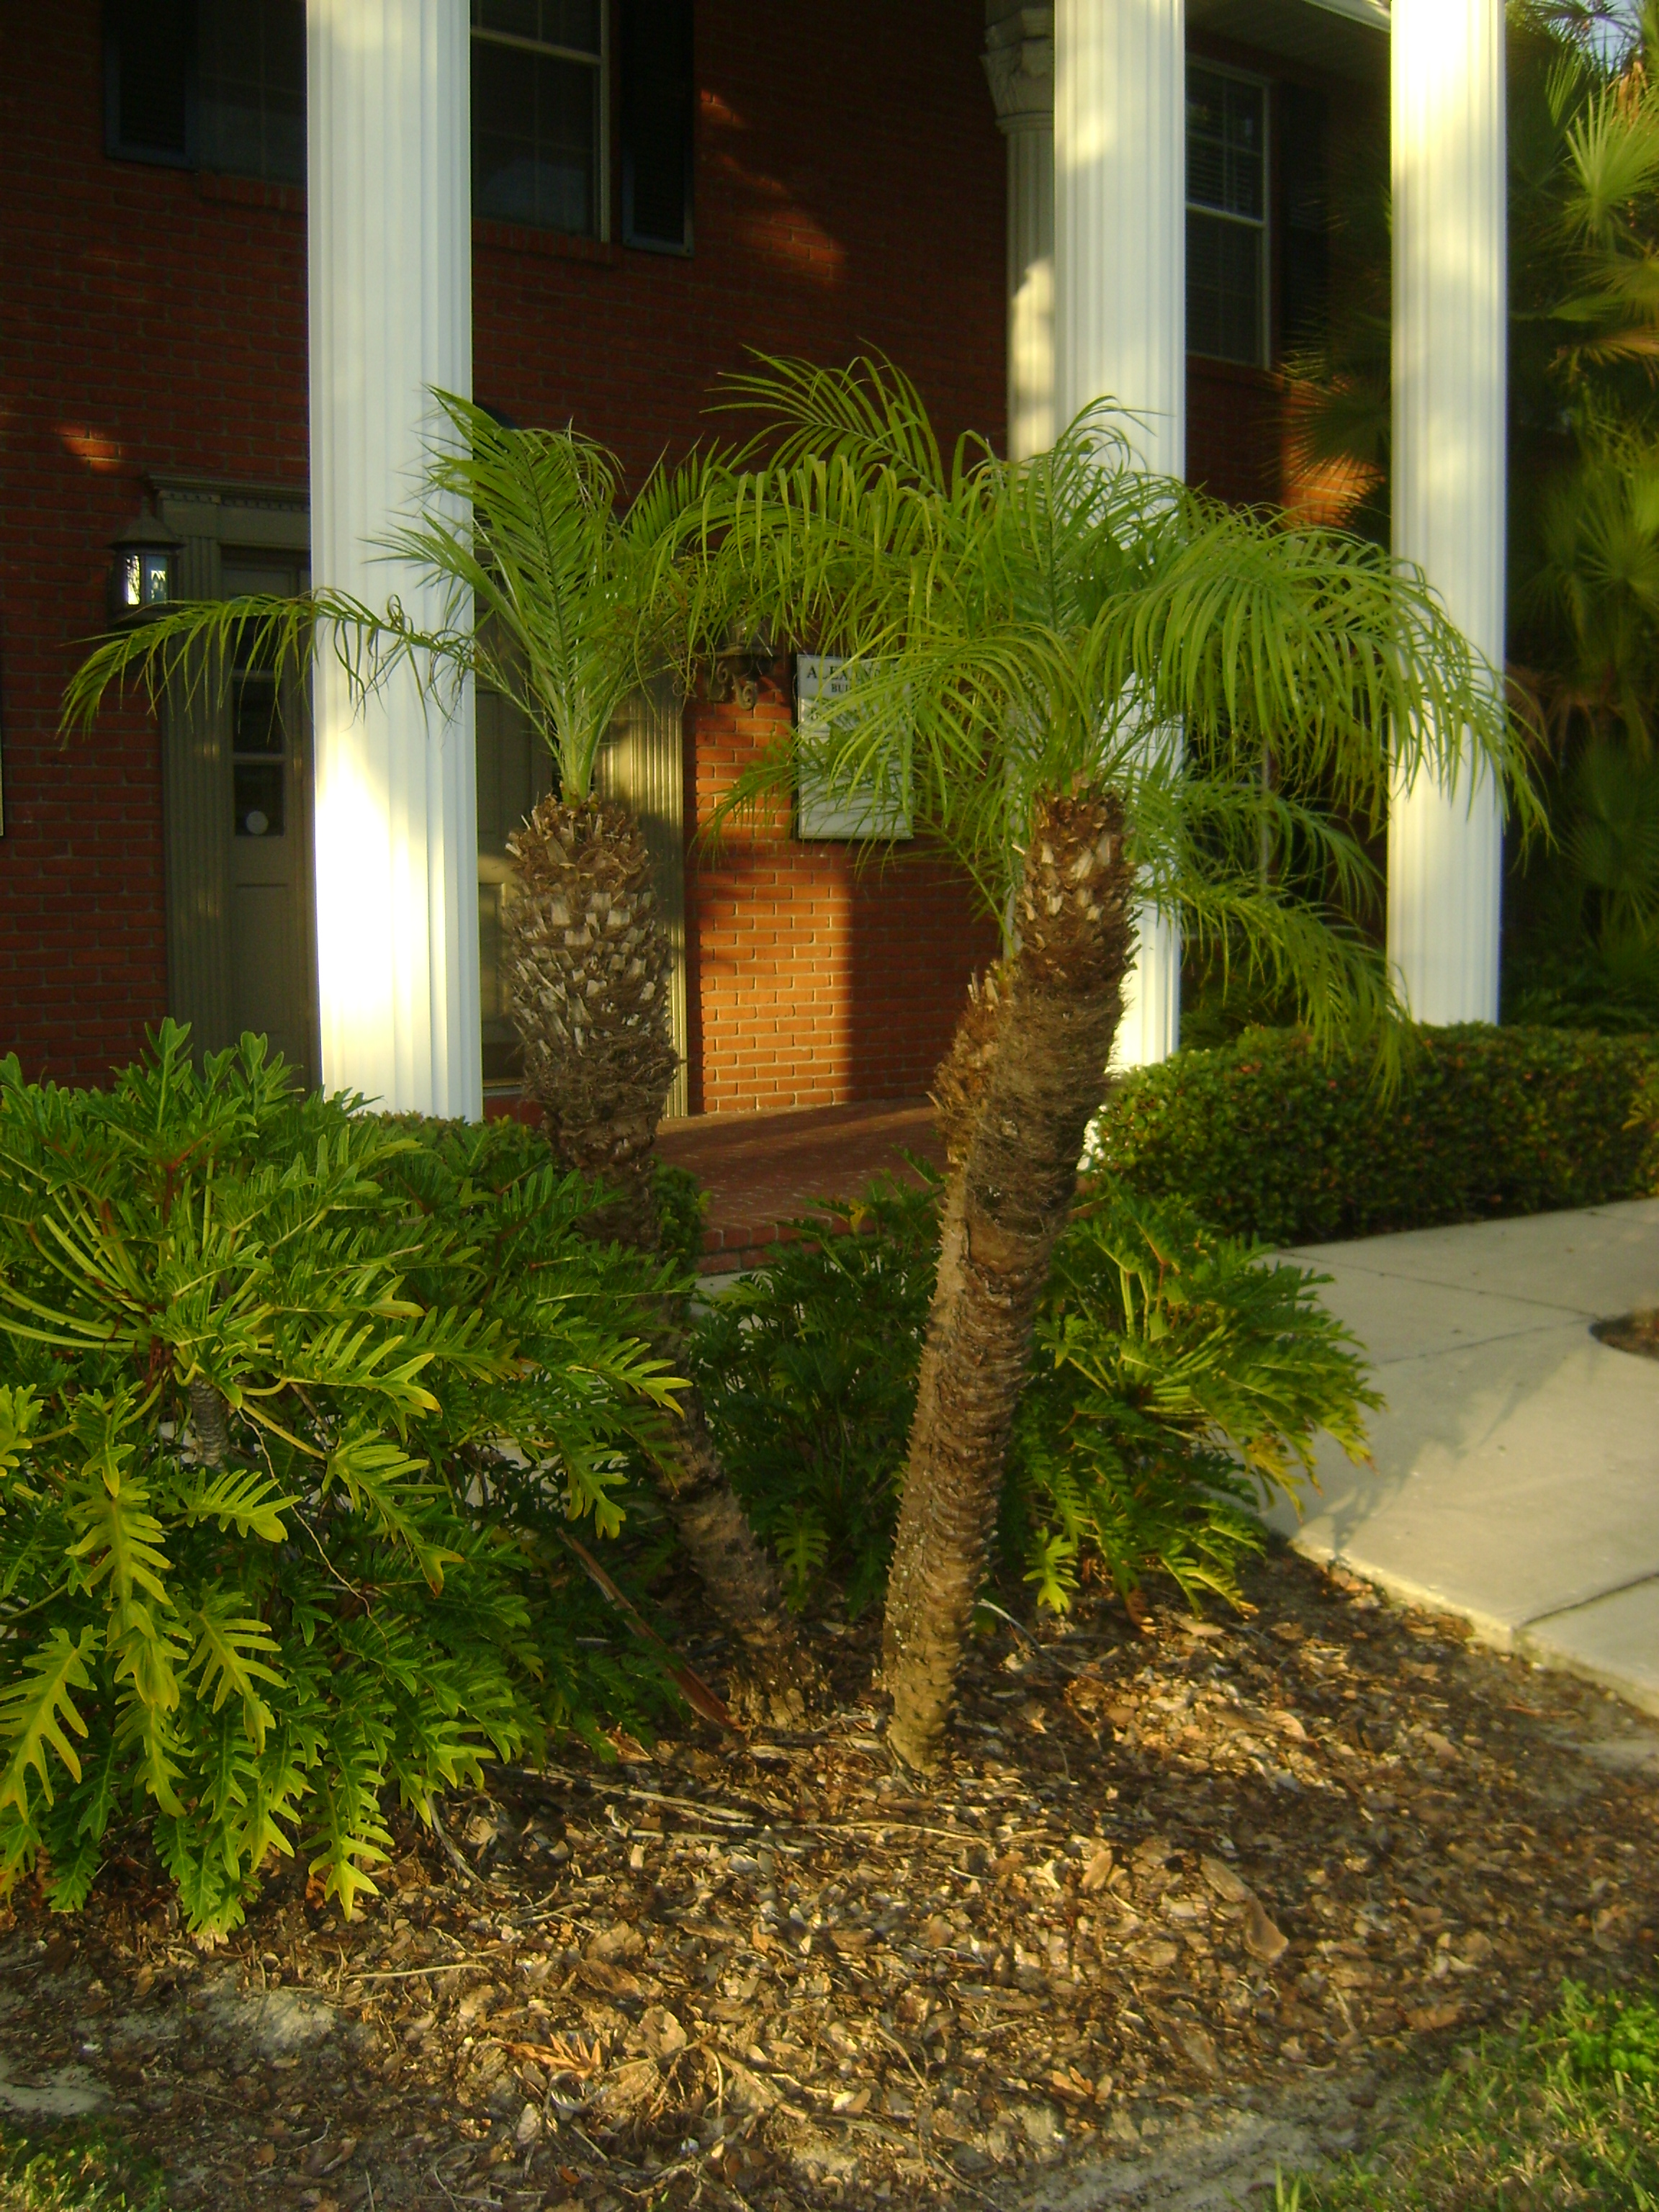 Buy Robellini-Pygmy Date Palm Trees in Miami, Ft Lauderdale, Kendall